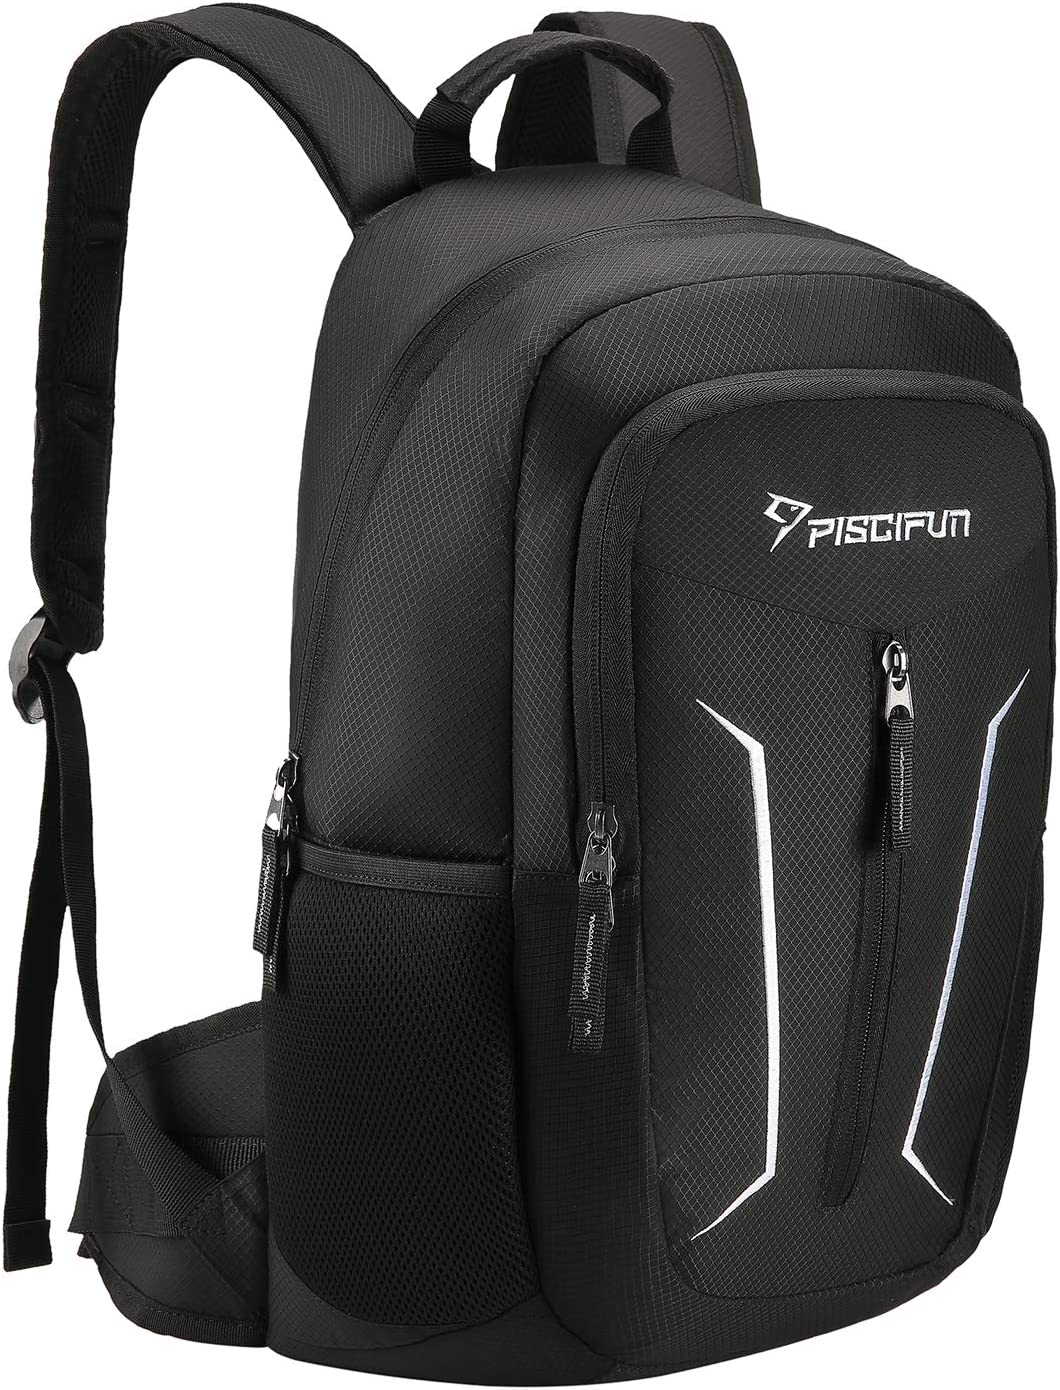 Piscifun Cooler Backpack – Leakproof Insulated Cooler Bag – Soft Lightweight Backpack Cooler for Men Women – Keeps Food and Drinks Cold – for Picnic, Fishing, Hiking, Camping, Beach, Park, Day Trip